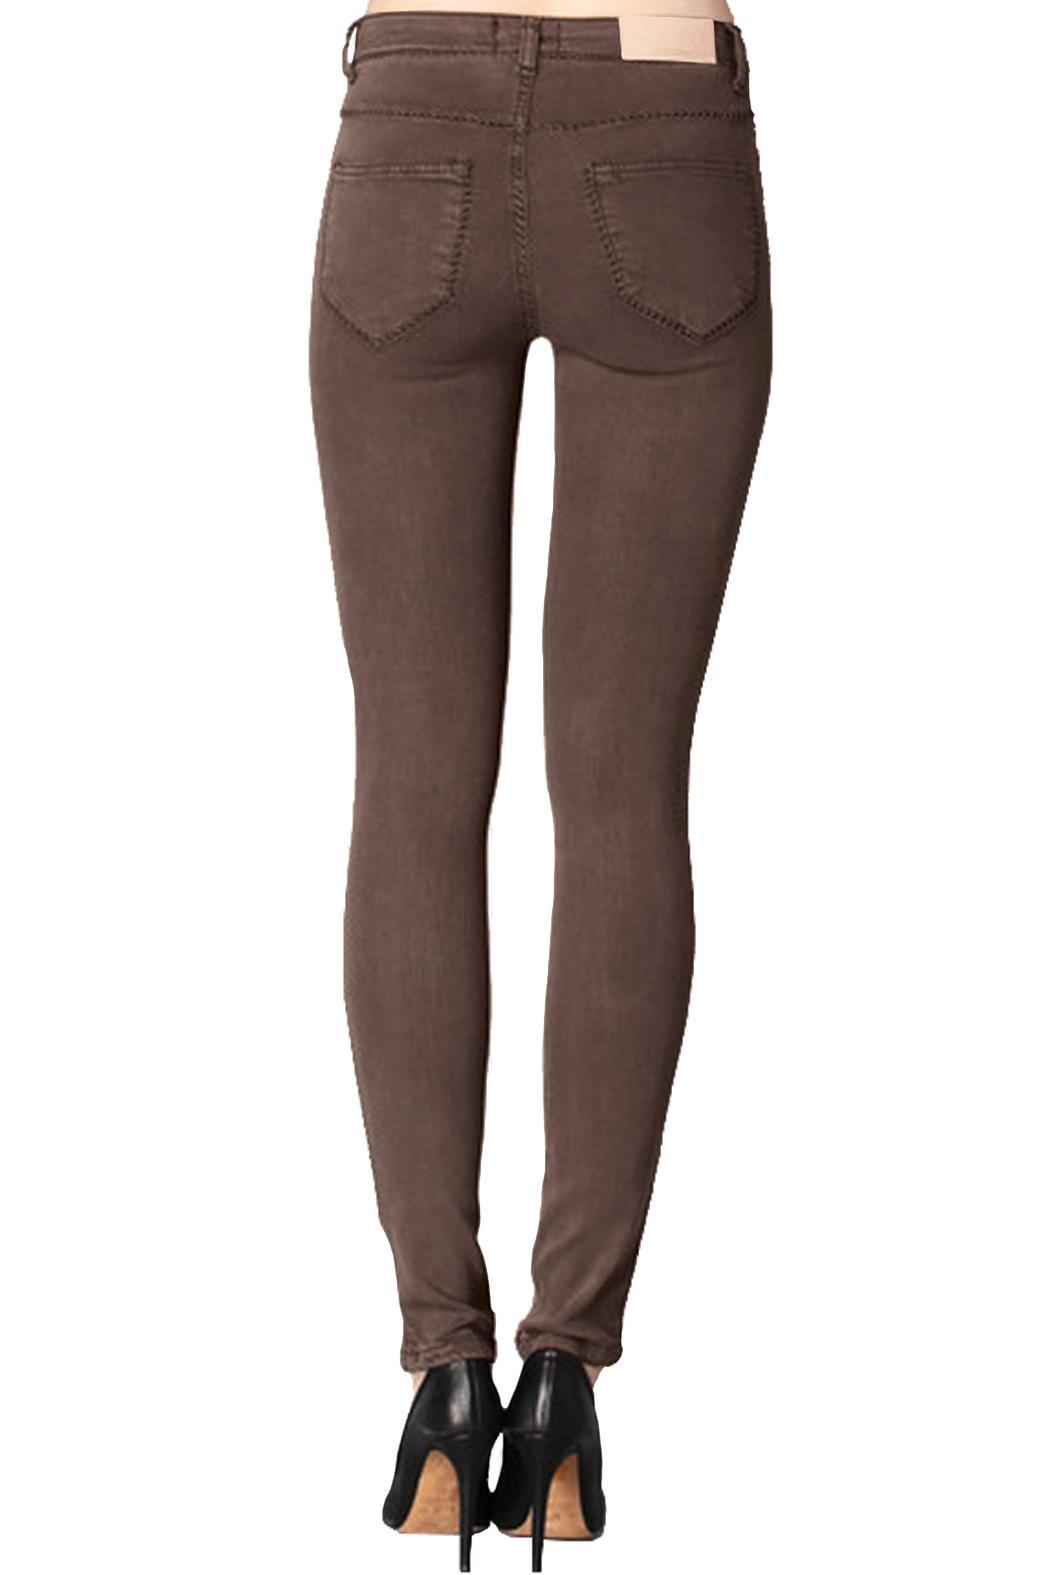 hotel particulier Slim Trousers - Front Full Image